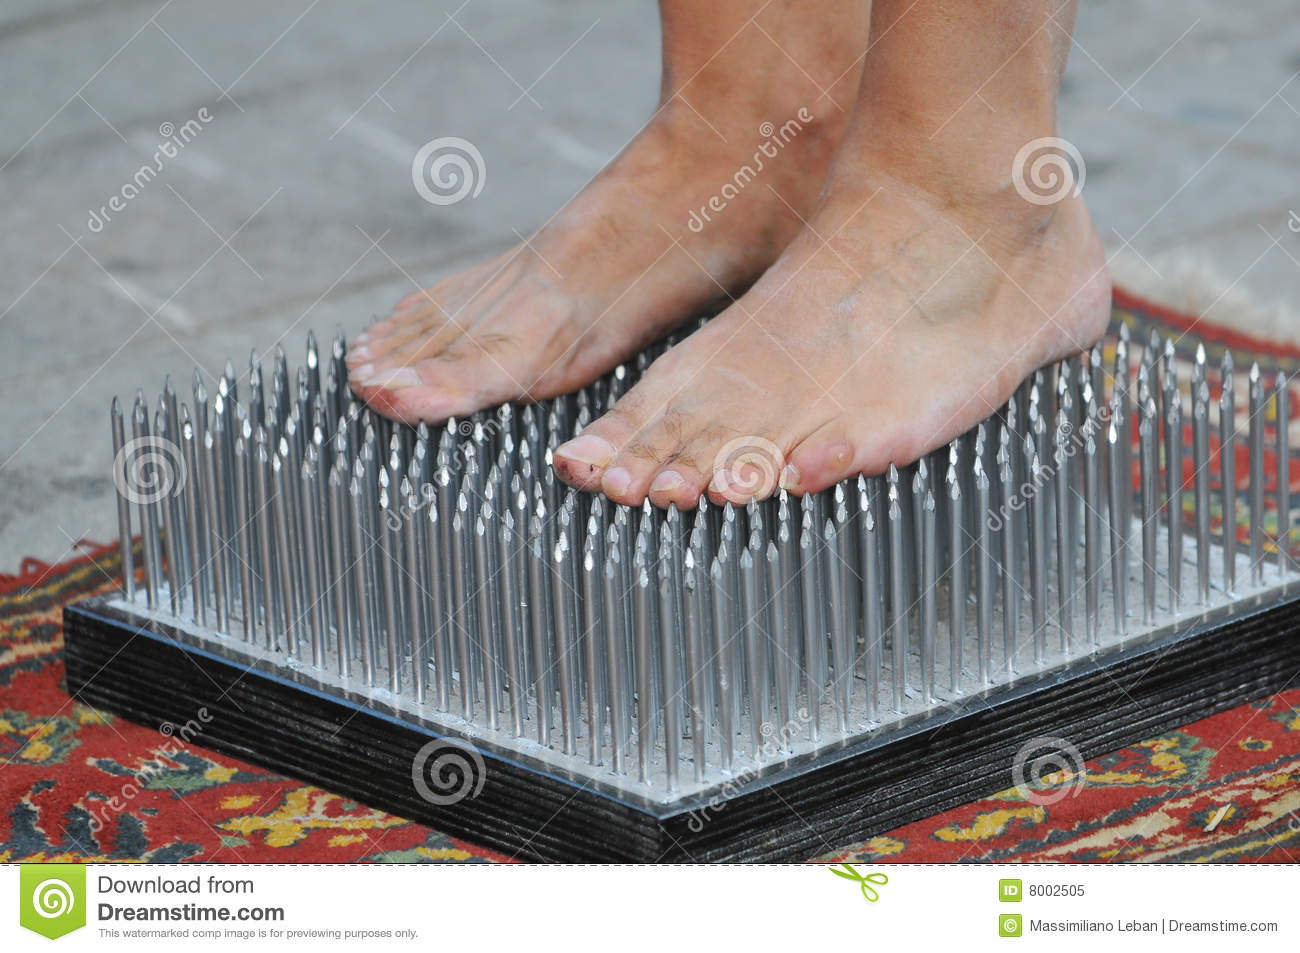 Bed Of Nails Royalty Free Stock Photo - Image: 8002505